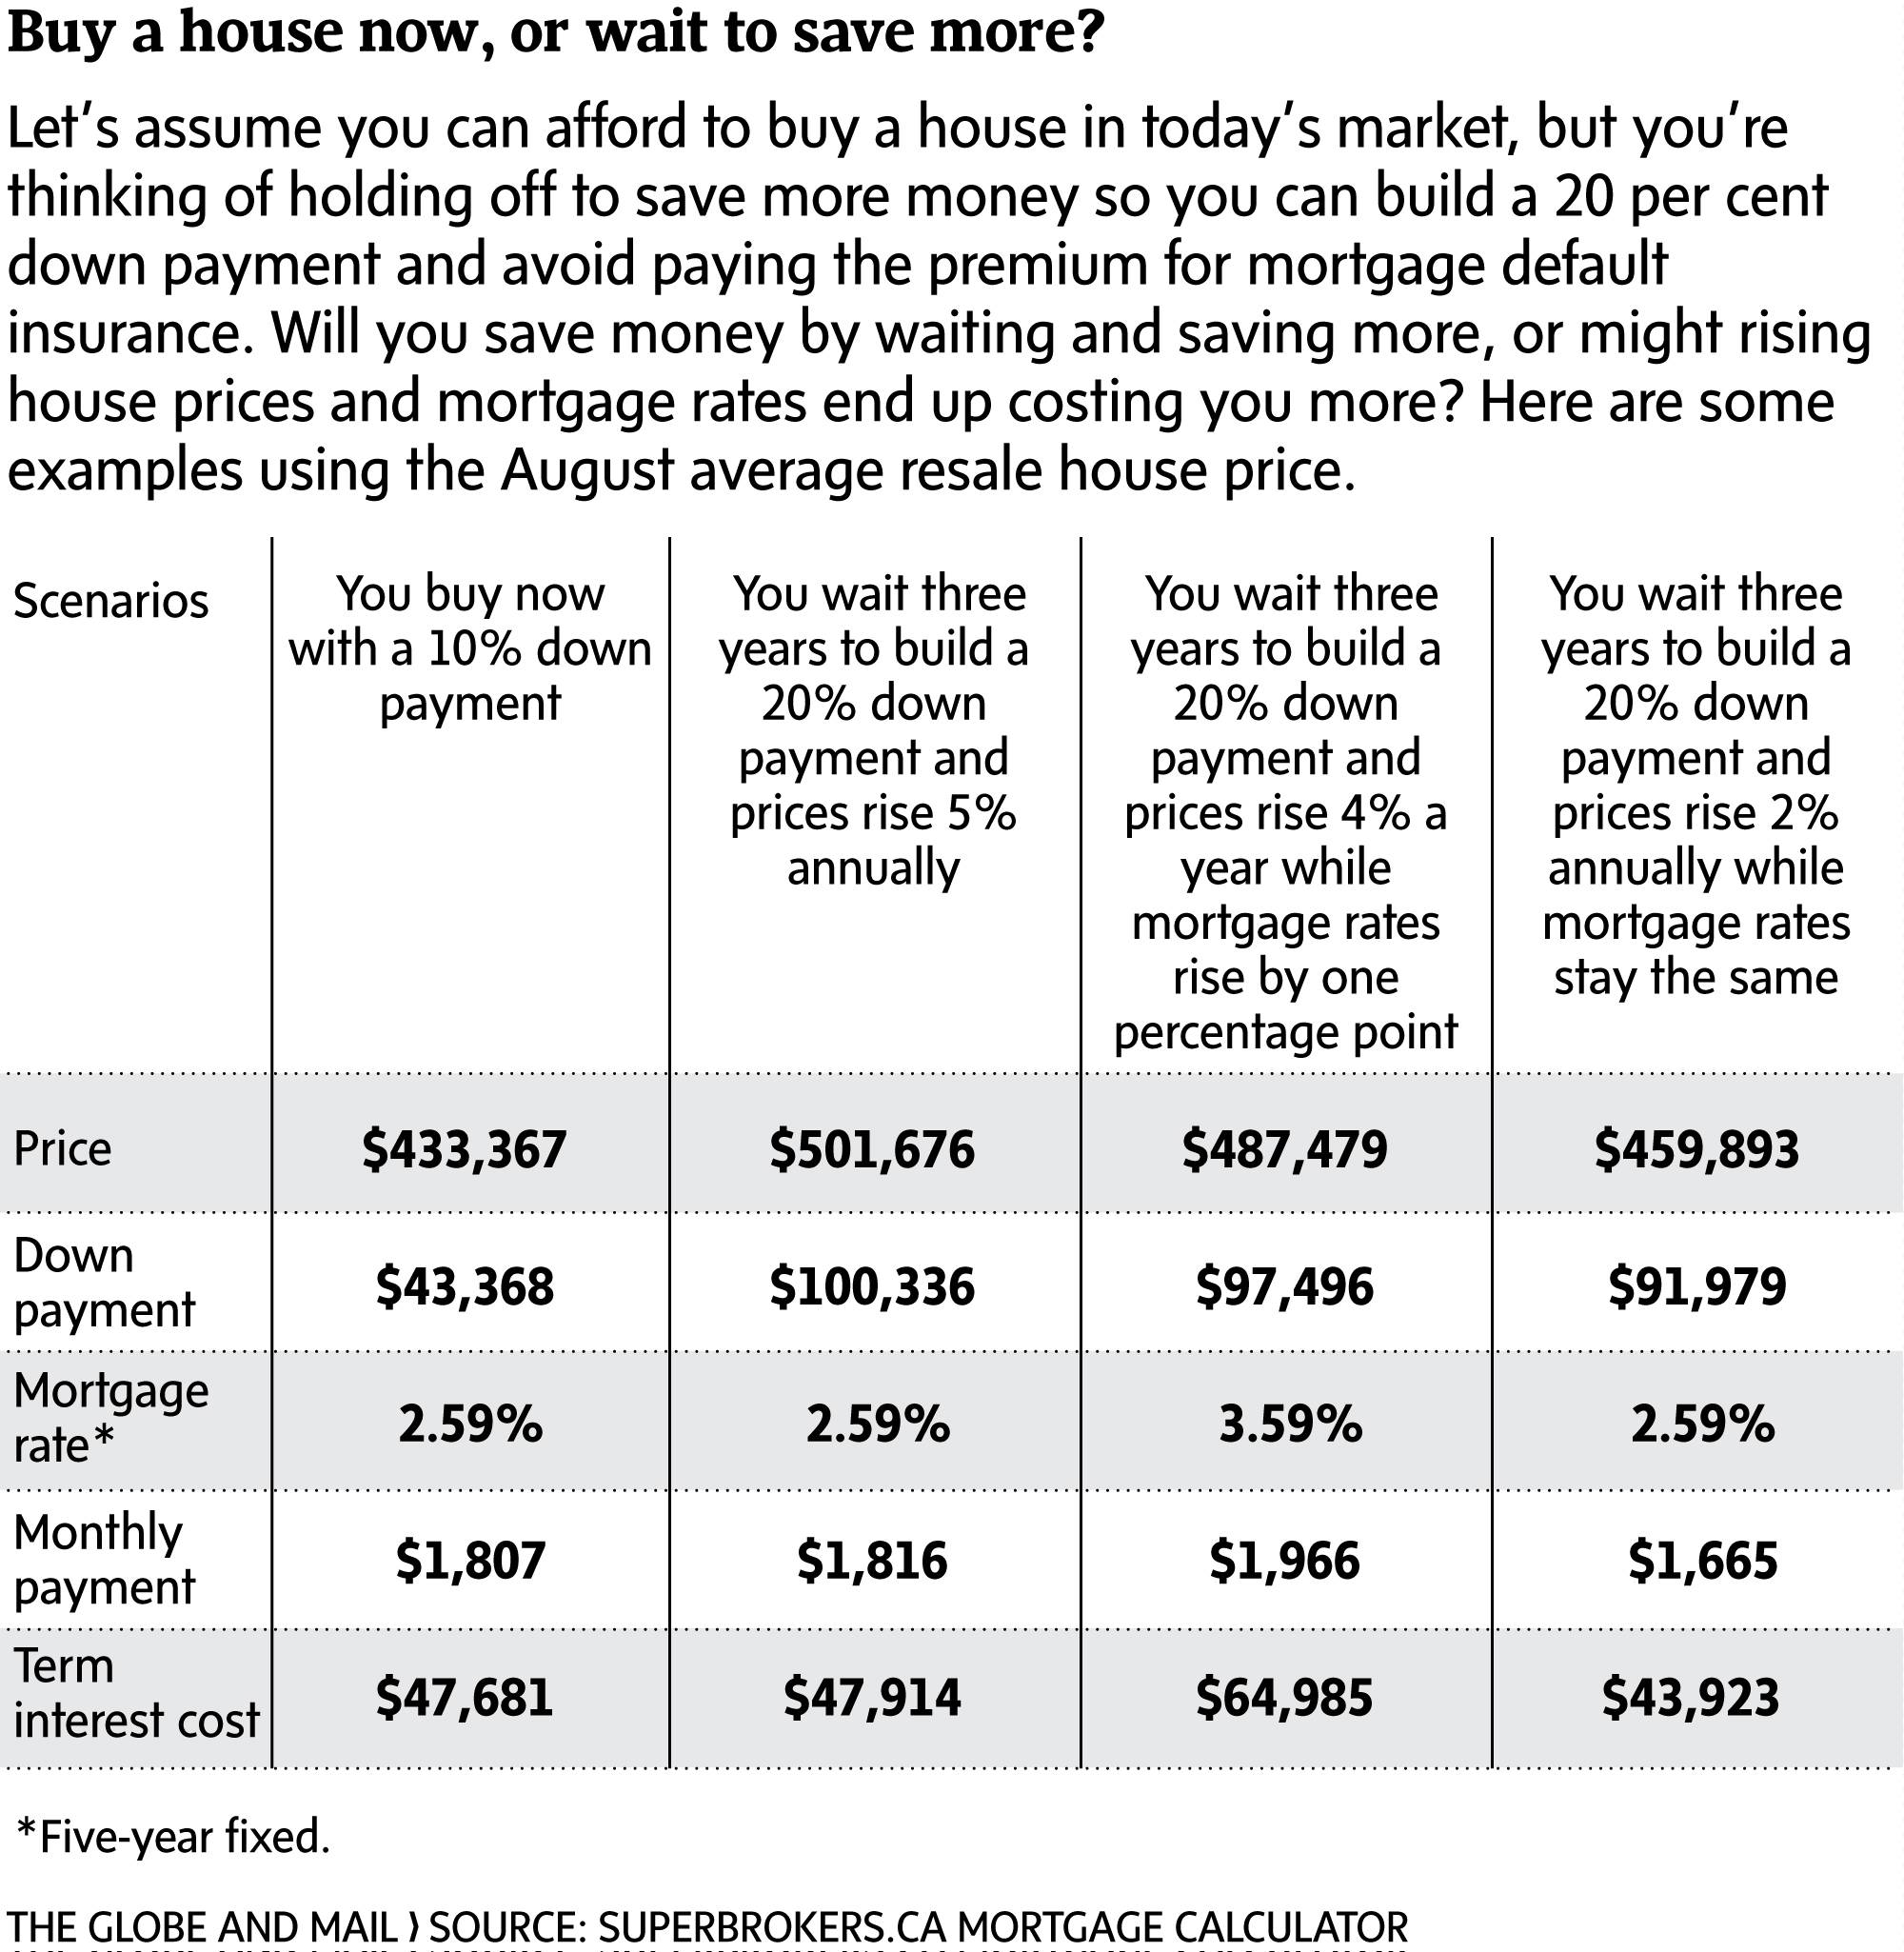 It's time for many Canadians to abandon the 20% down-payment rule